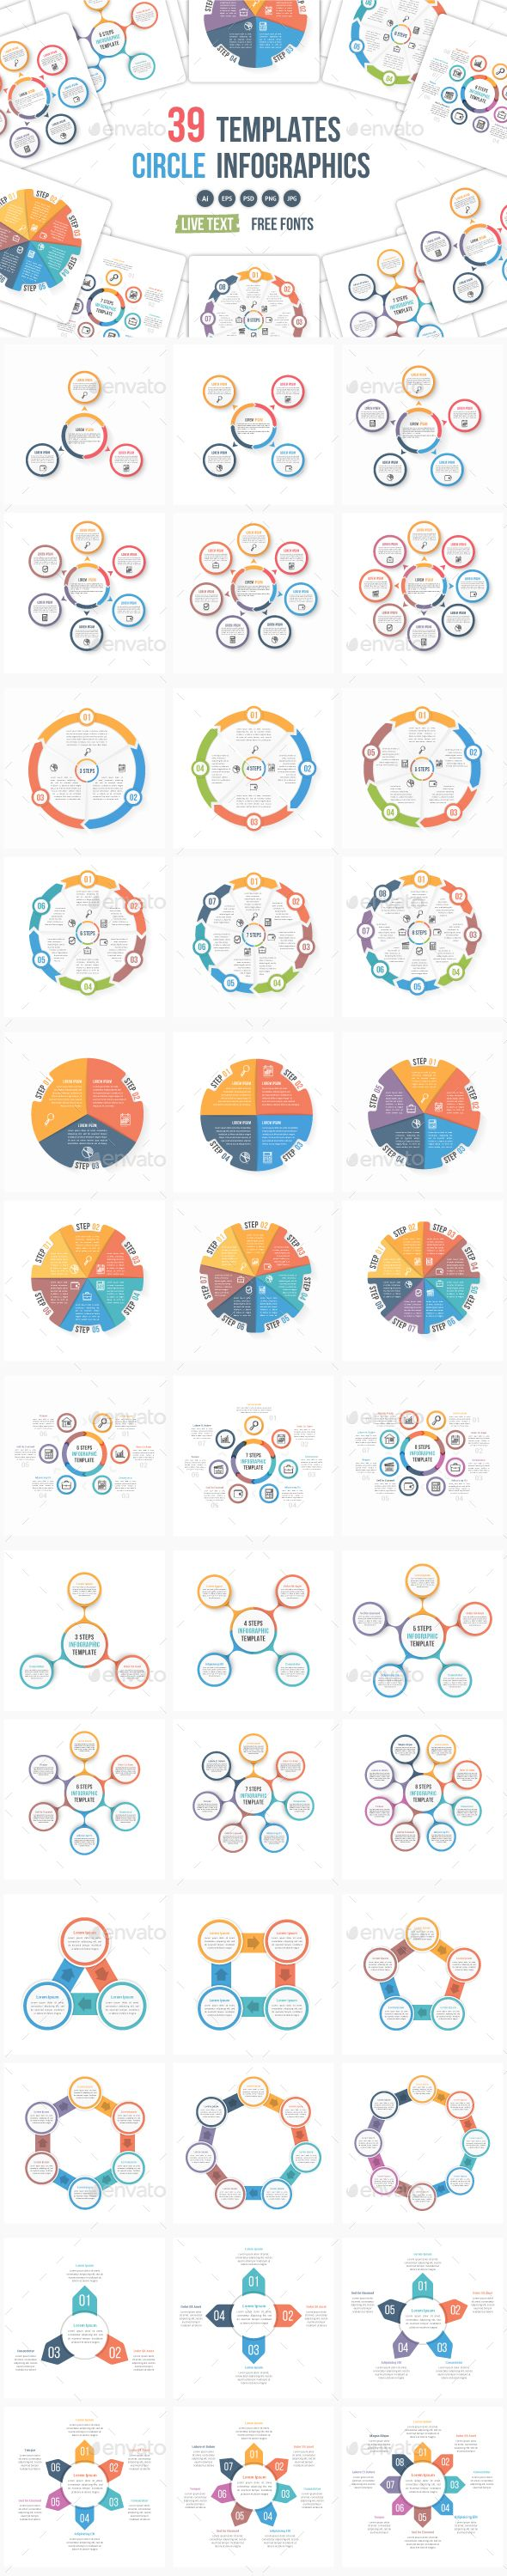 39 Circle Infographic Templates Bundle — Photoshop PSD #presentation #info • Download ➝ https://graphicriver.net/item/39-circle-infographic-templates-bundle/19939125?ref=pxcr